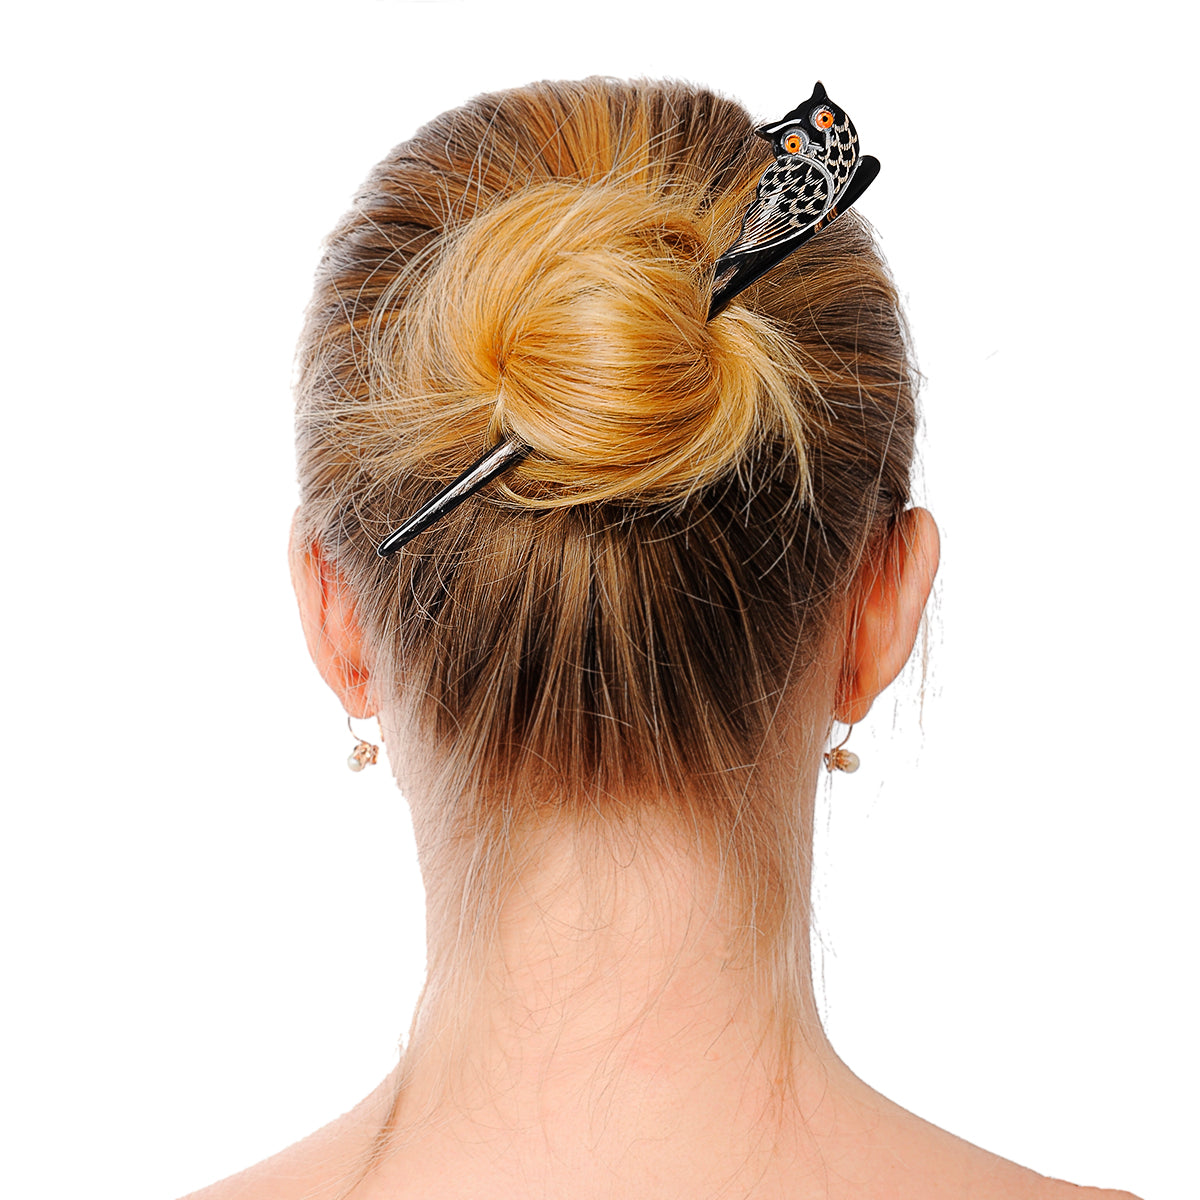 Buffalo Horn Hair Stick - Black Owl